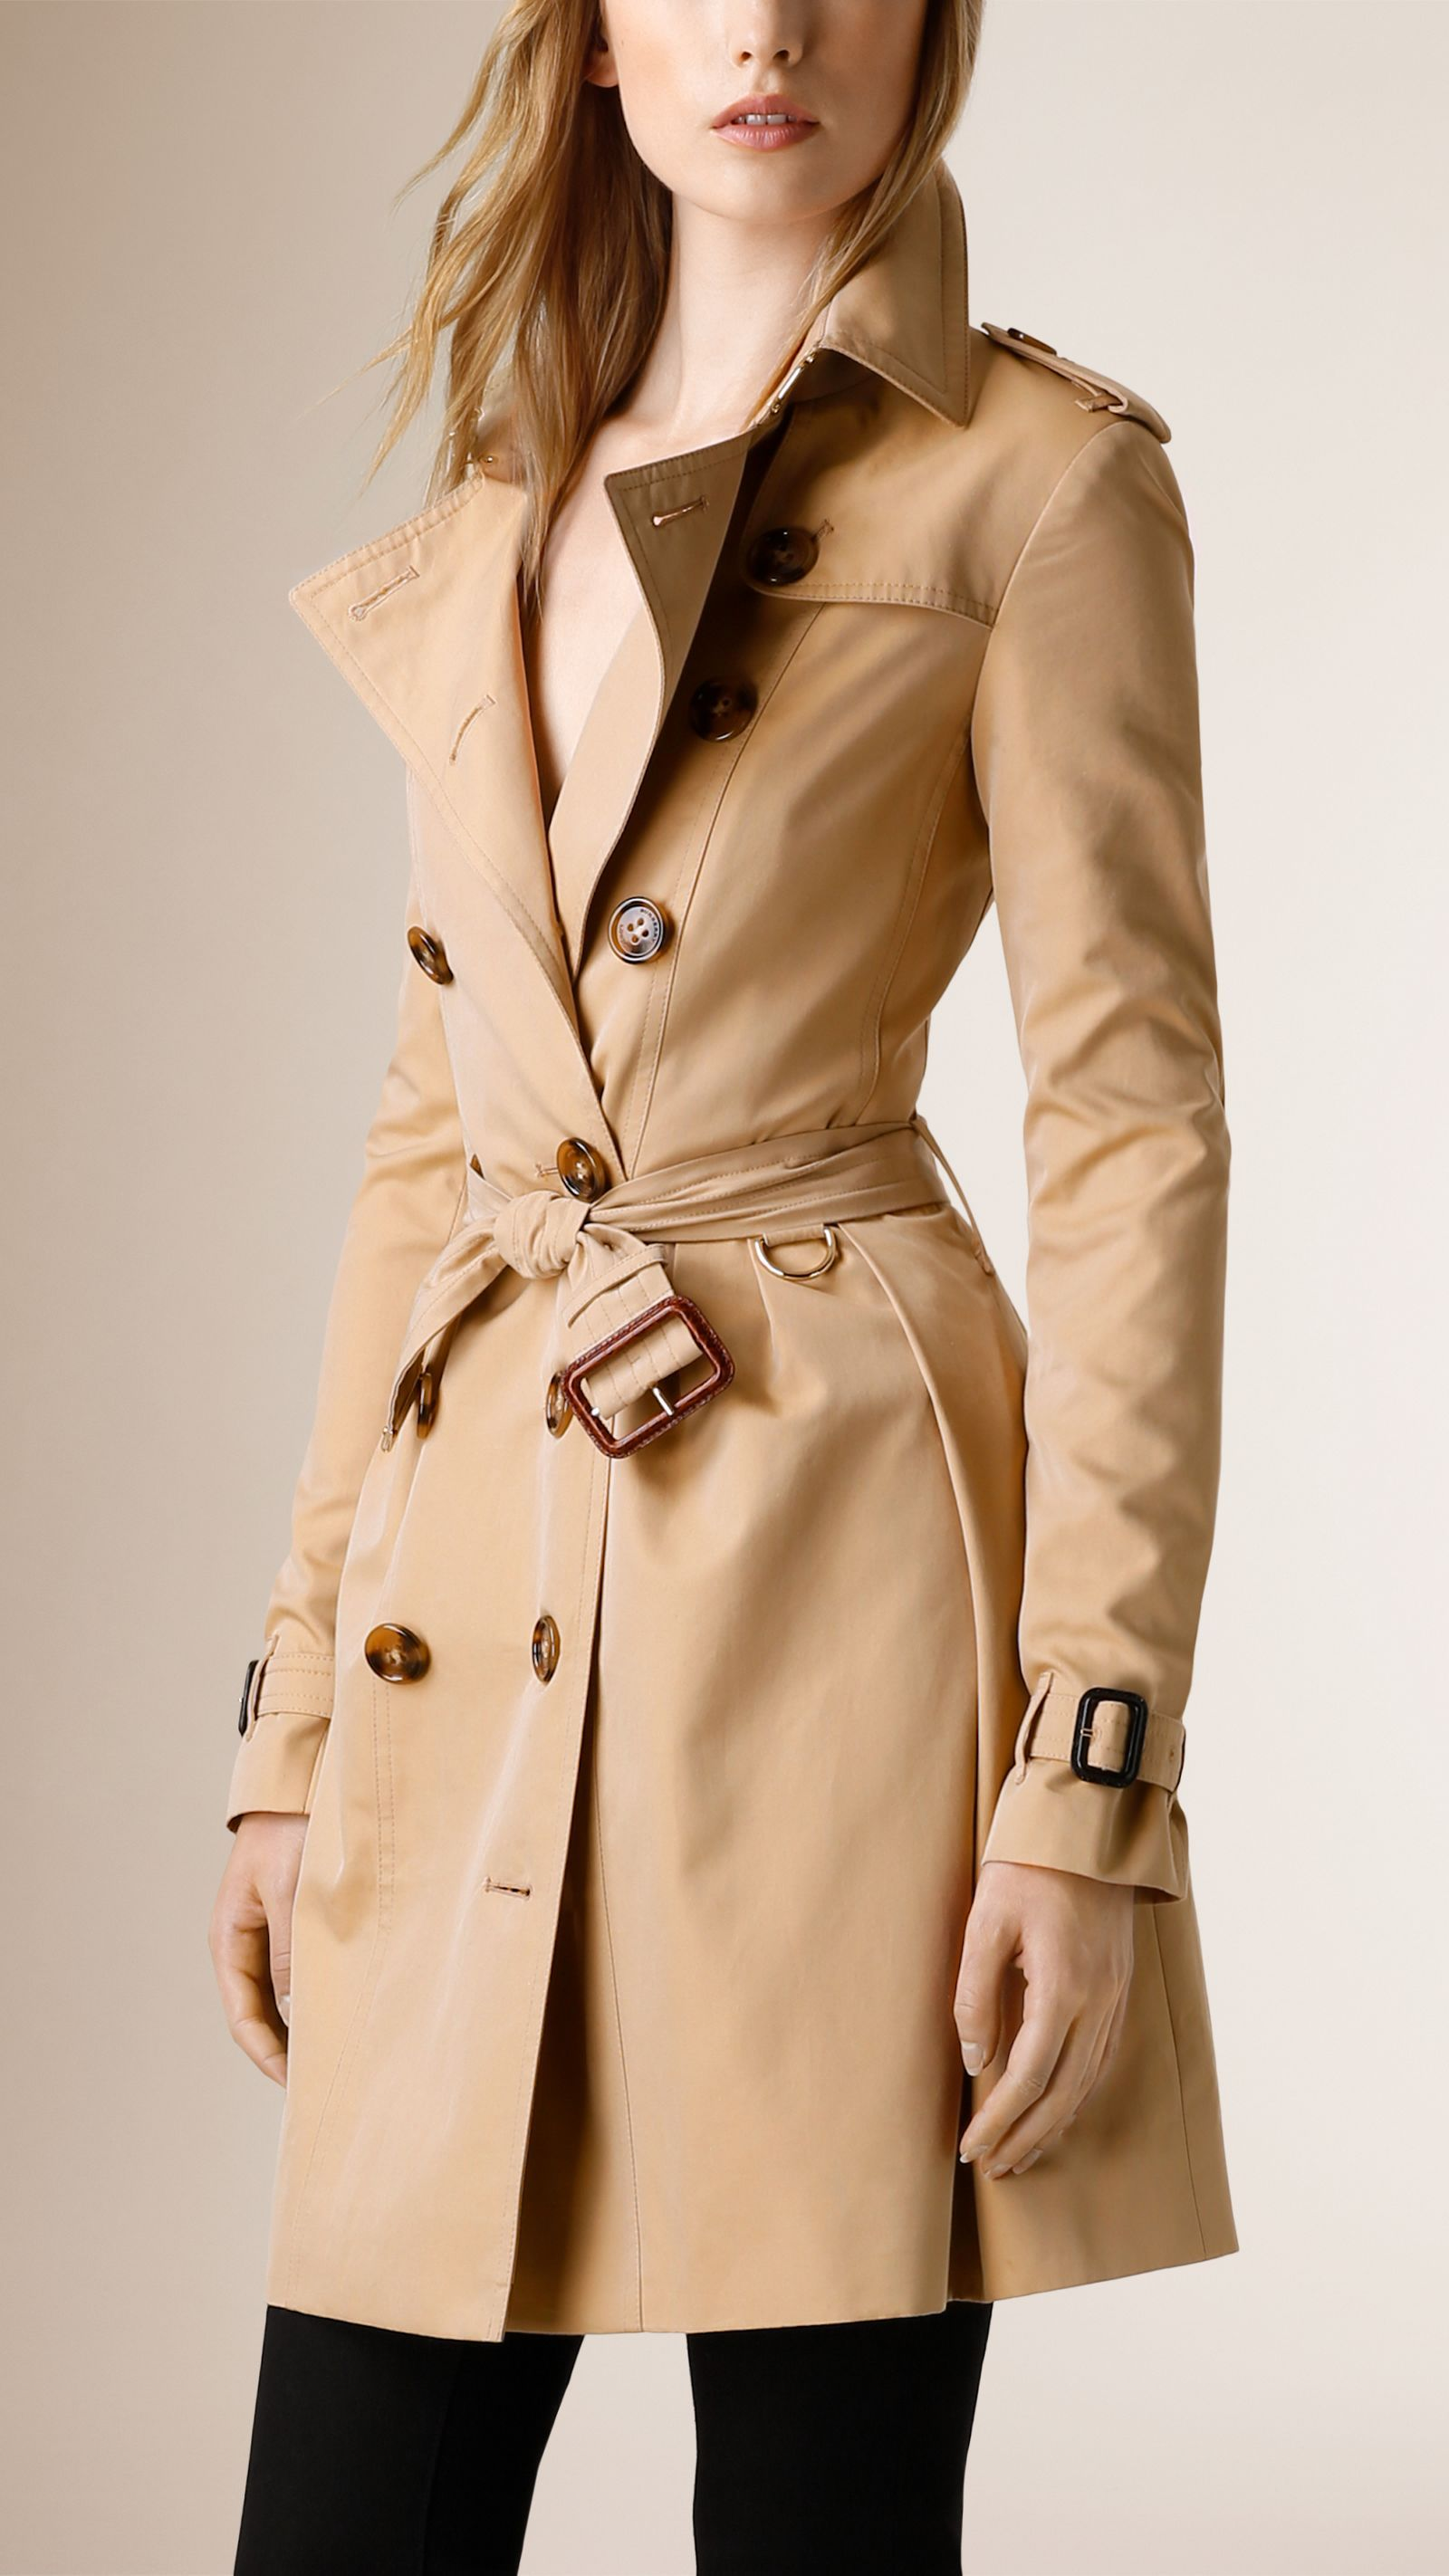 burberry-walditch-petite-coat-girl-was-stripped-by-boys-sex-videos